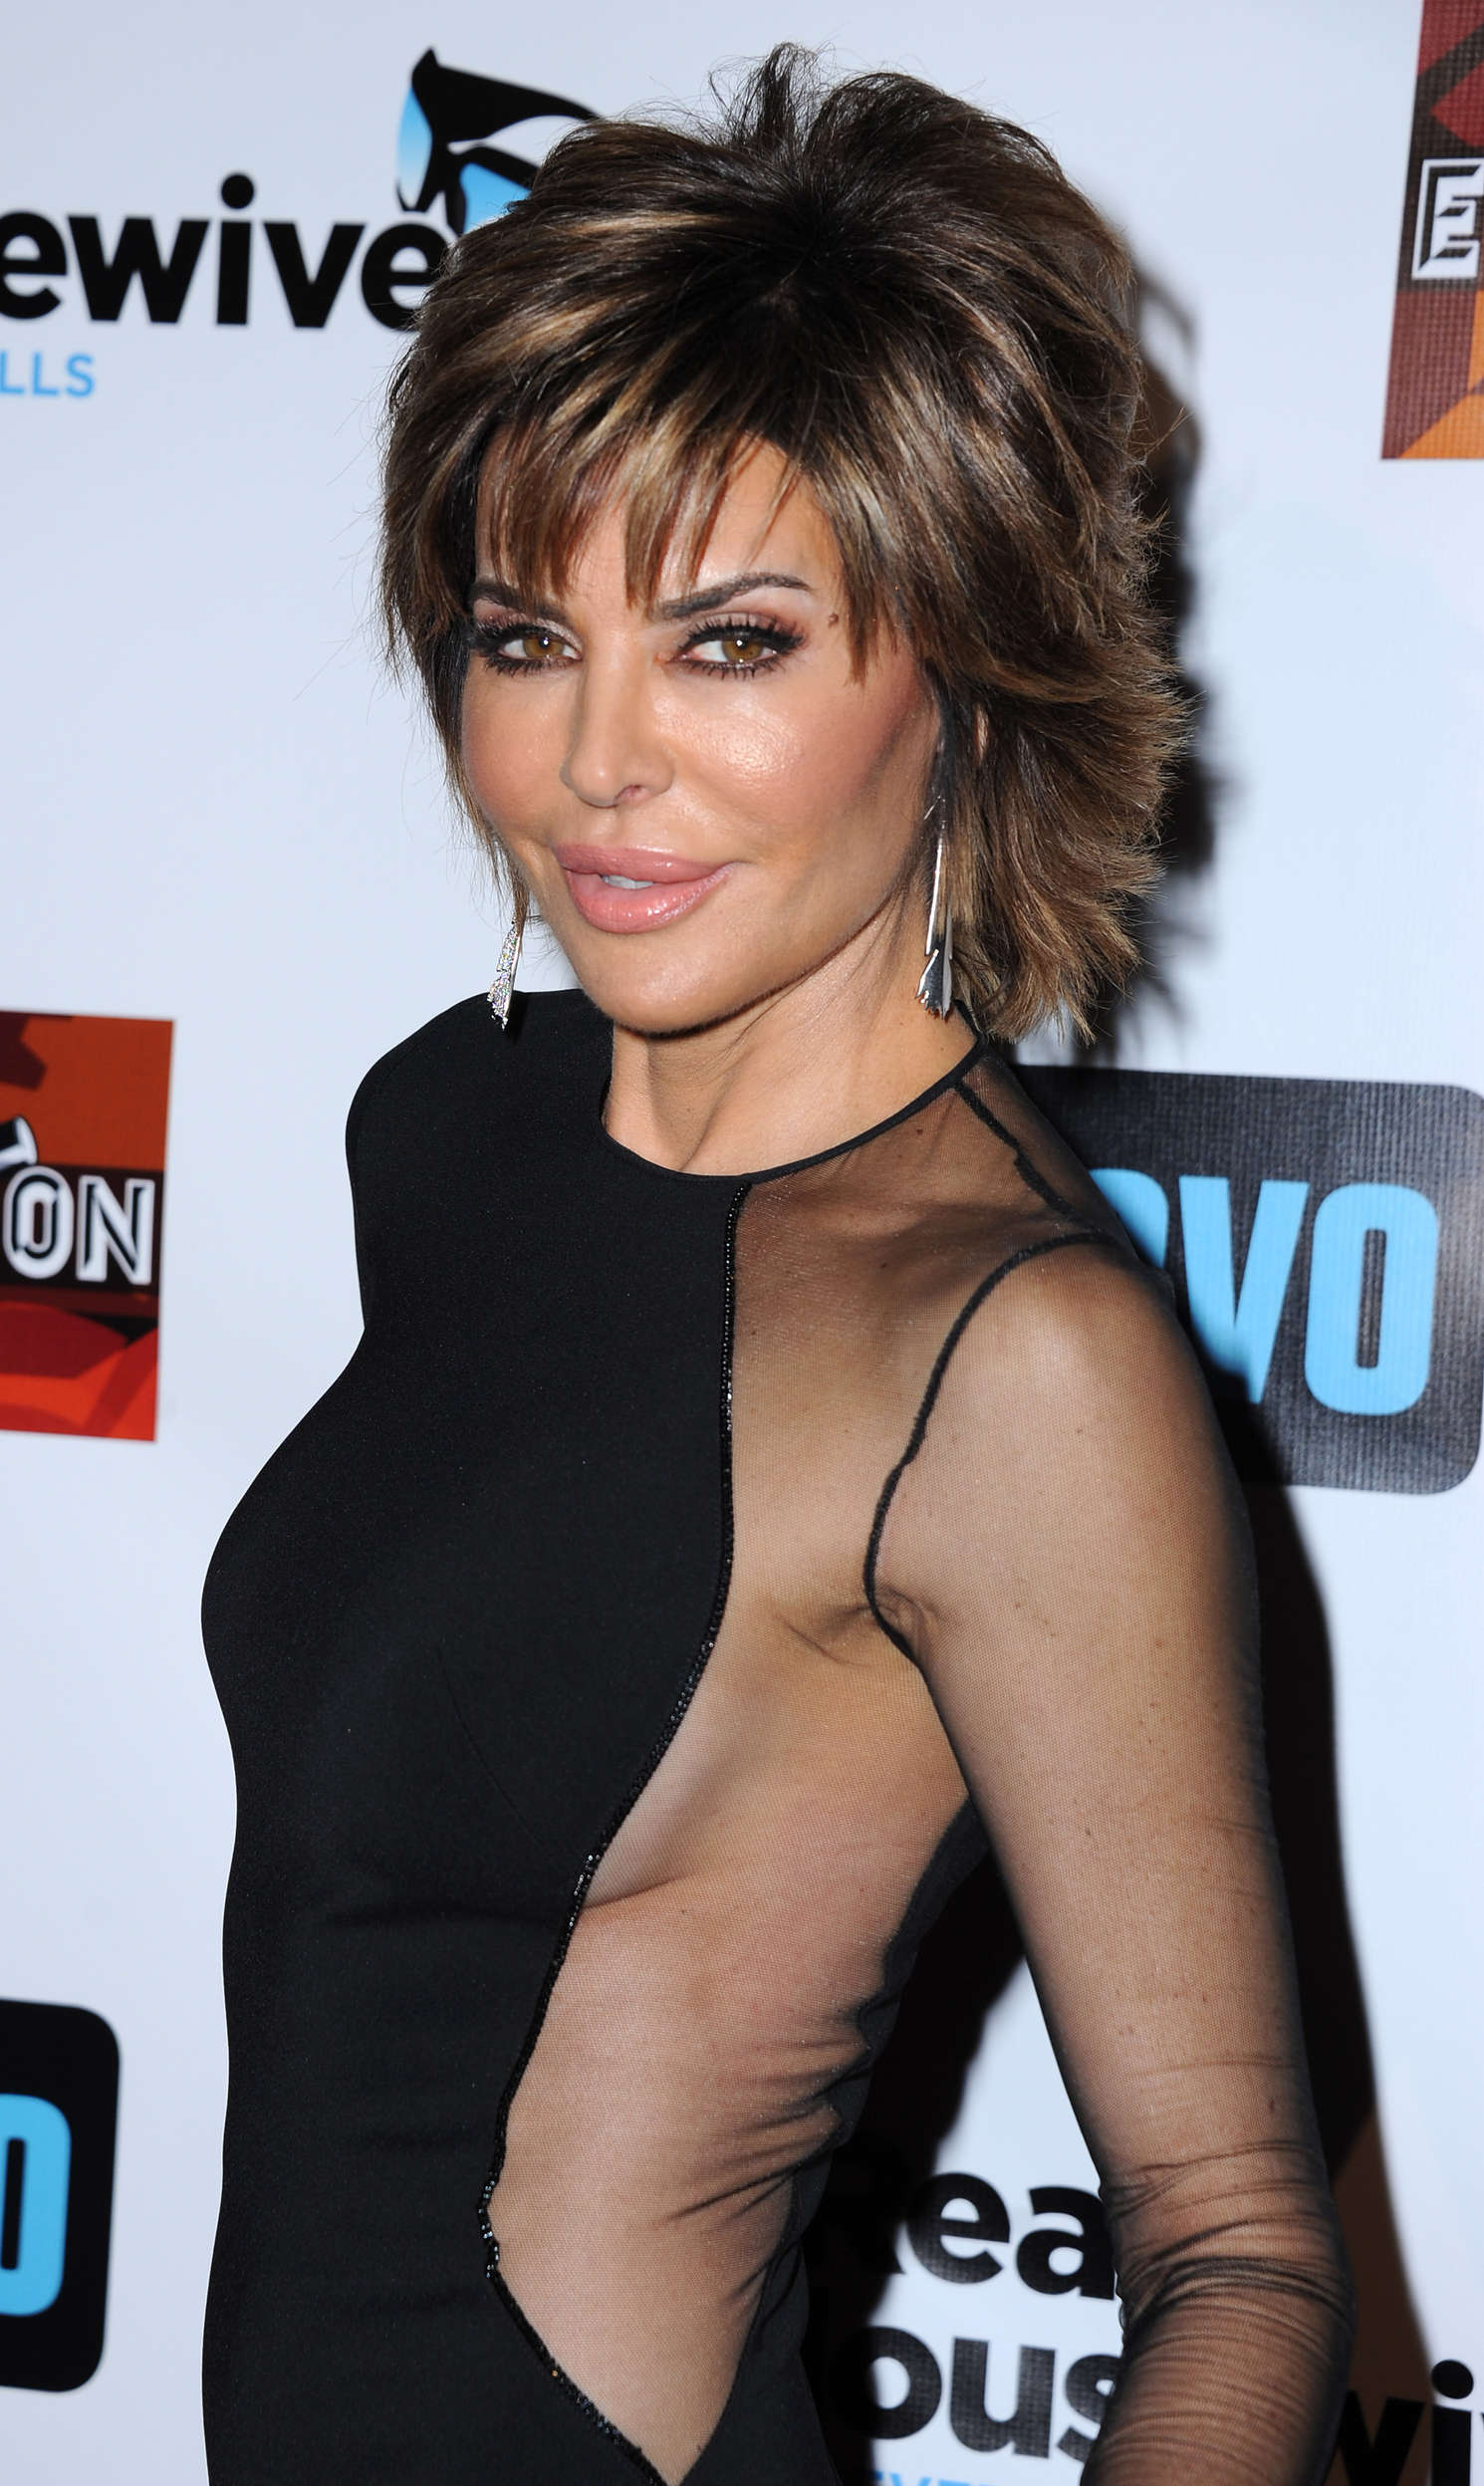 Lisa Rinna The Real Housewives Of Beverly Hills Season